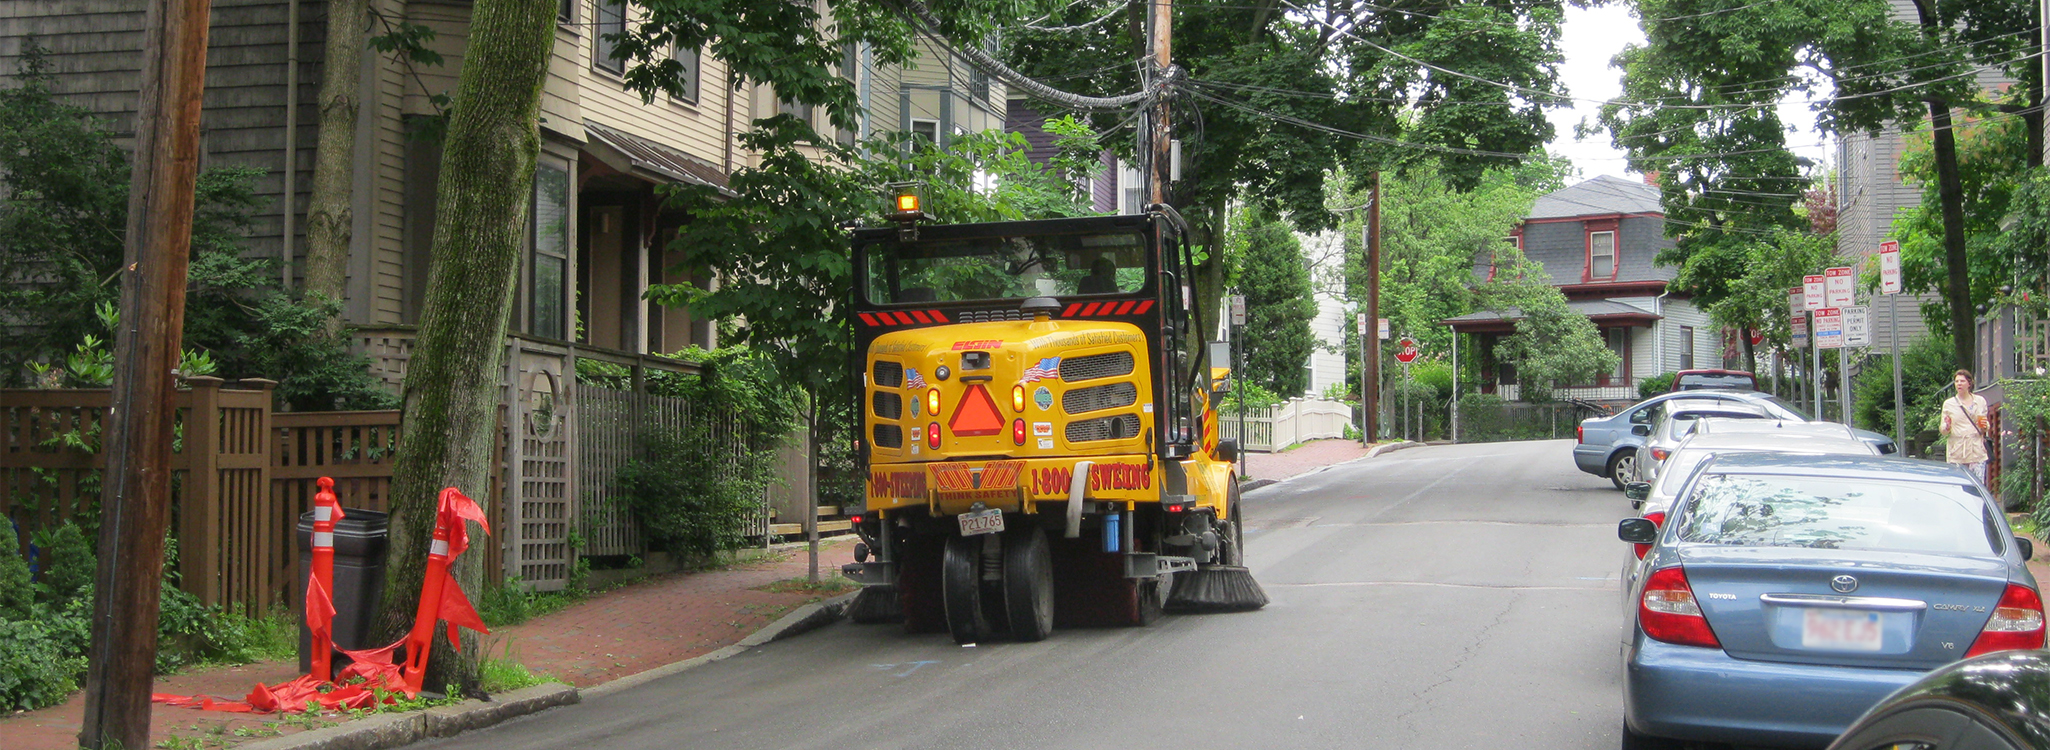 Street Sweeper cleaning roadway